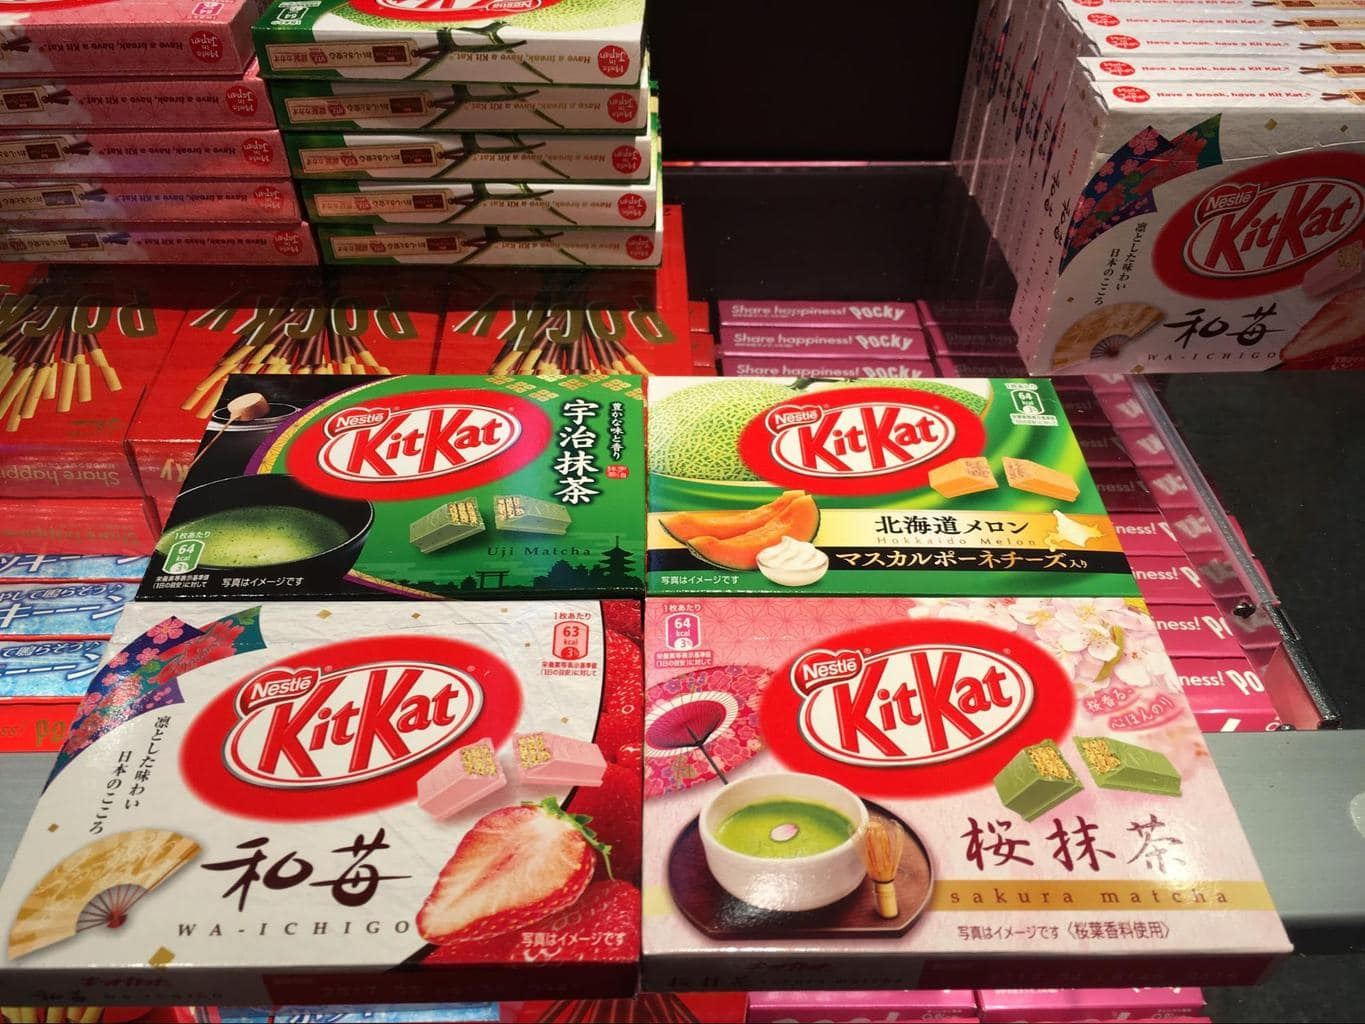 Interesting flavors of Pocky and Kit Kat